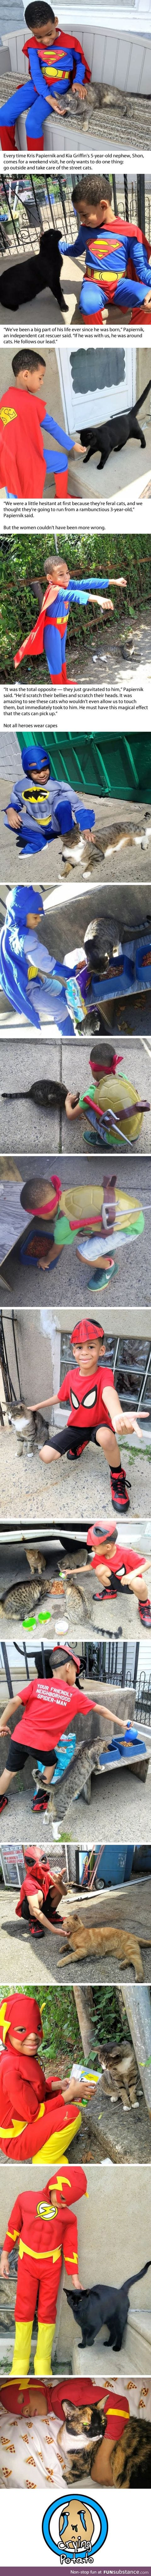 5-year-old boy who saves street cats is the hero we all want